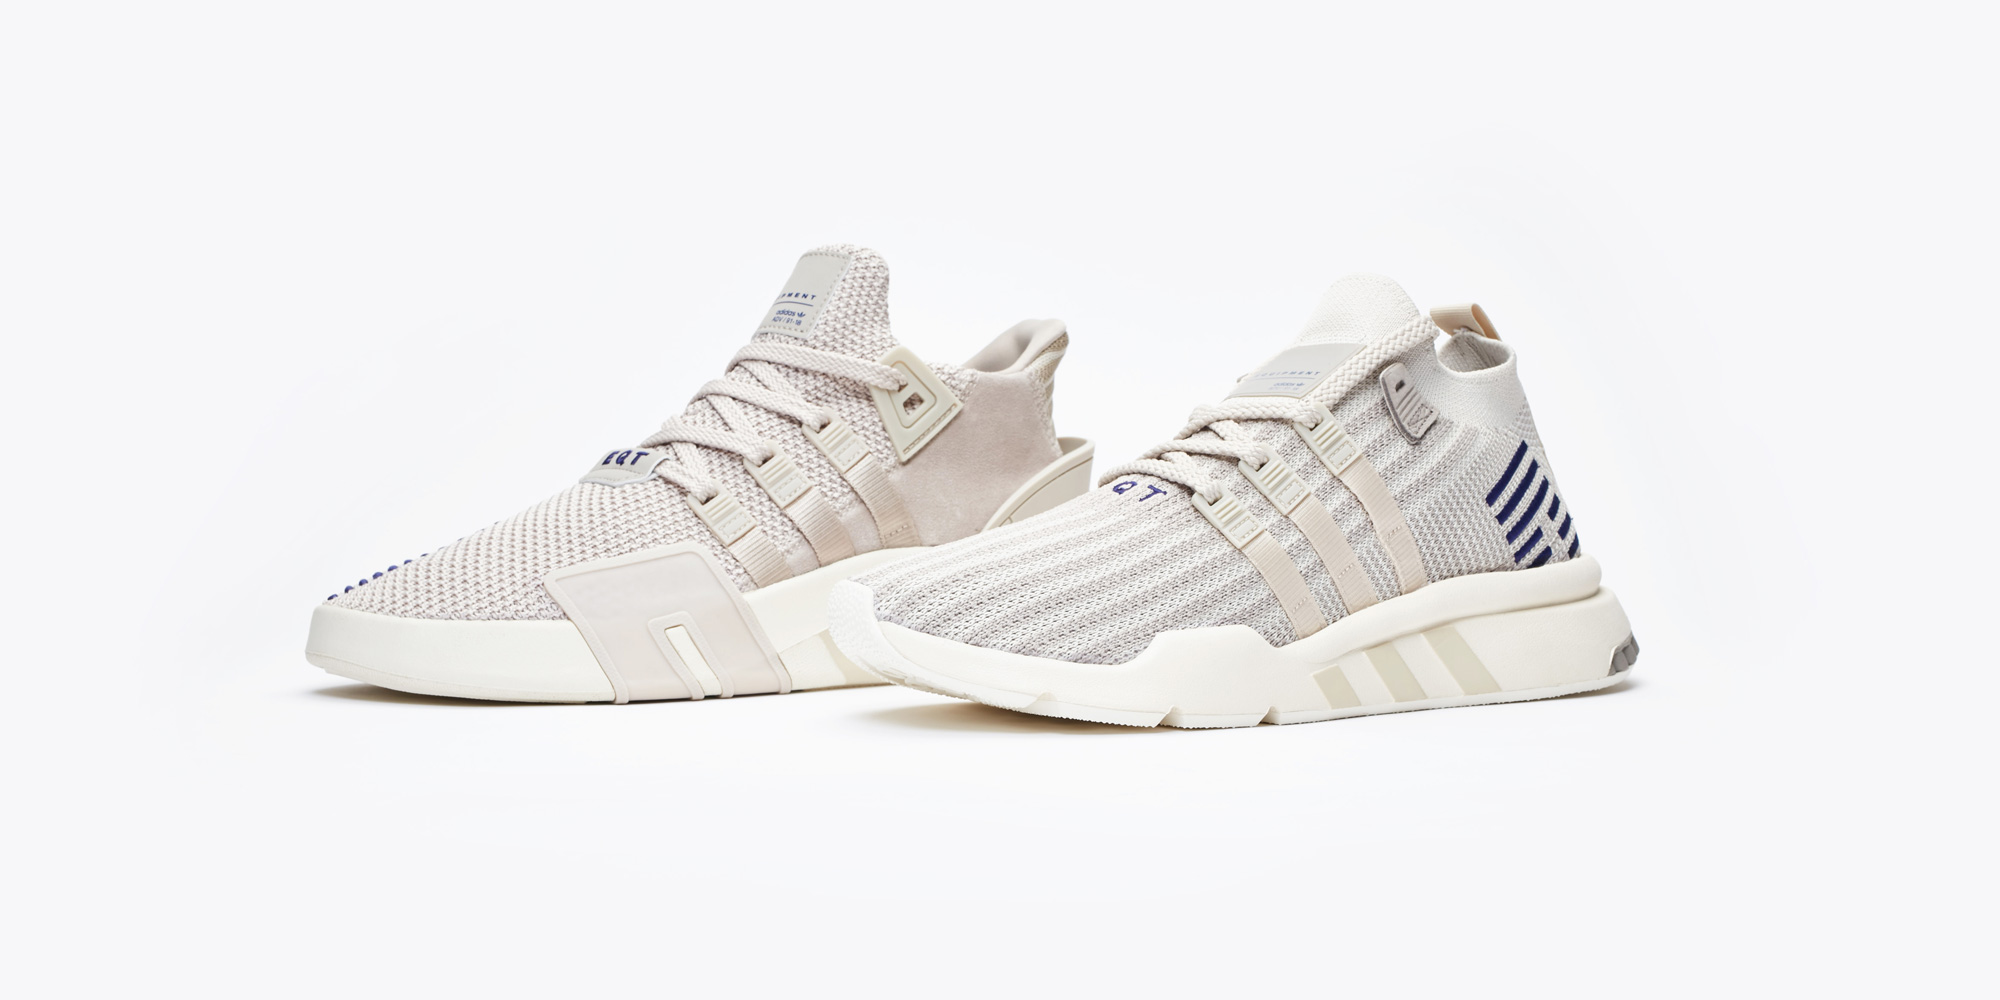 promo code 6611b b831e To introduce this exclusive pack, Sneakersnstuff worked on two recently  introduced adidas models. The adidas EQT Support Mid ADV ...